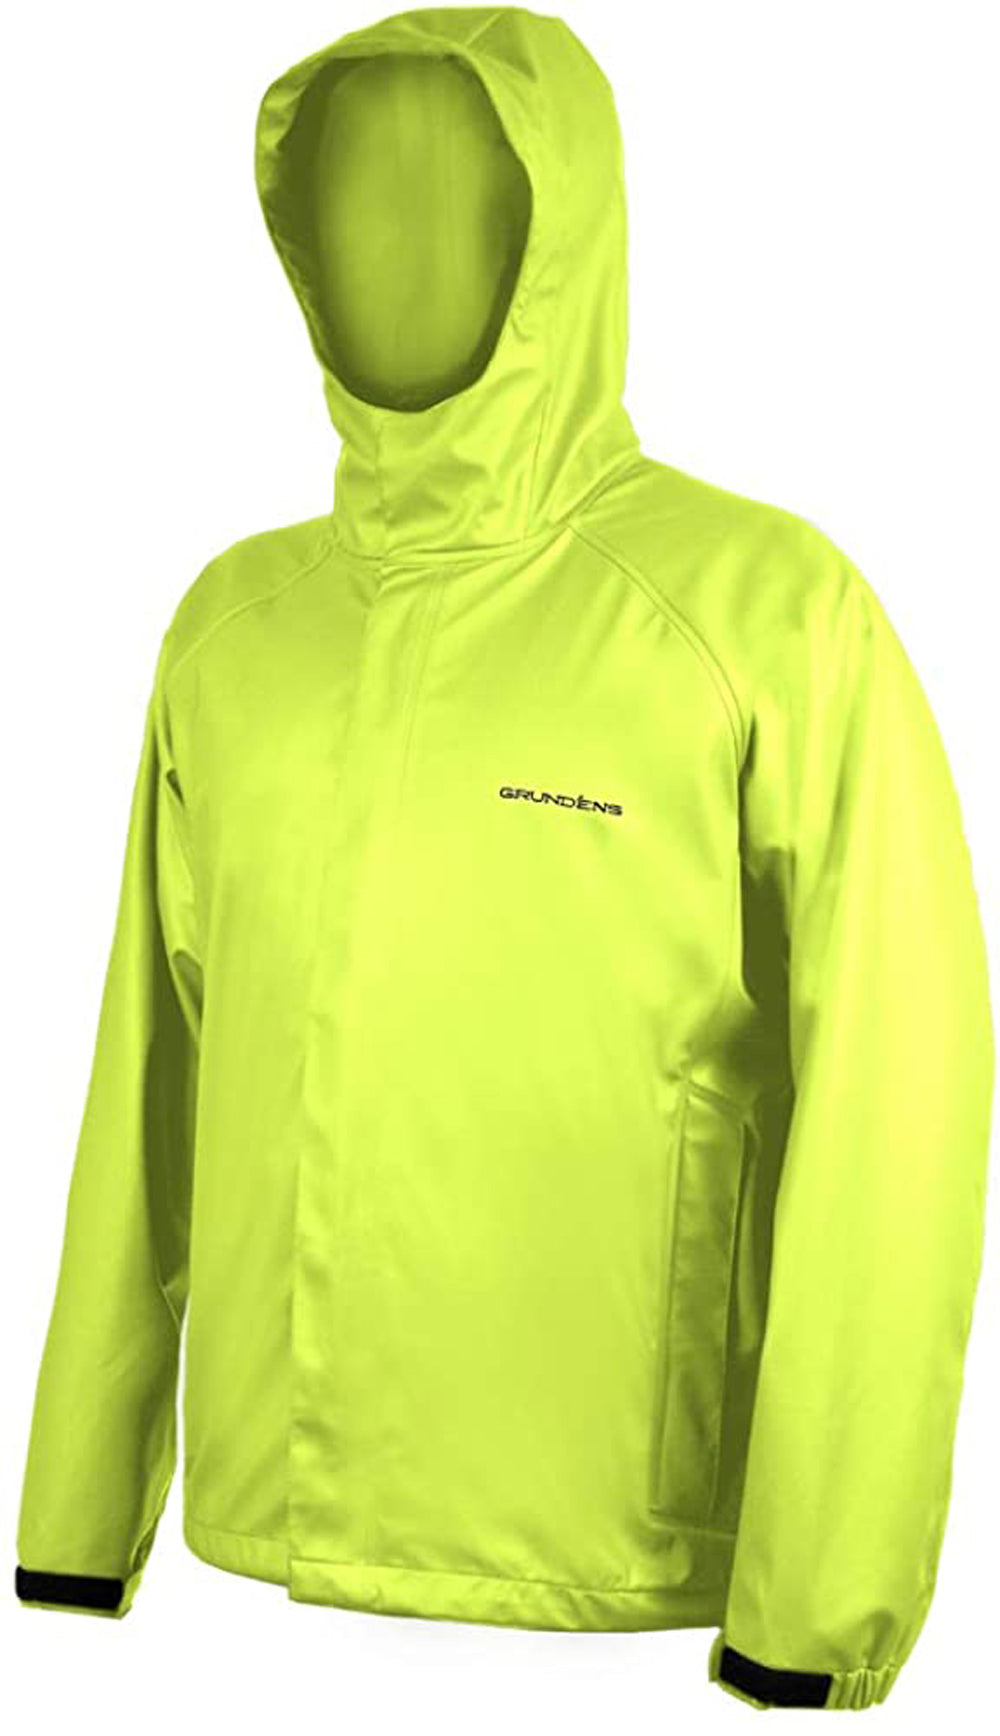 Neptune Jacket in Hi Vis Yellow color from the front view